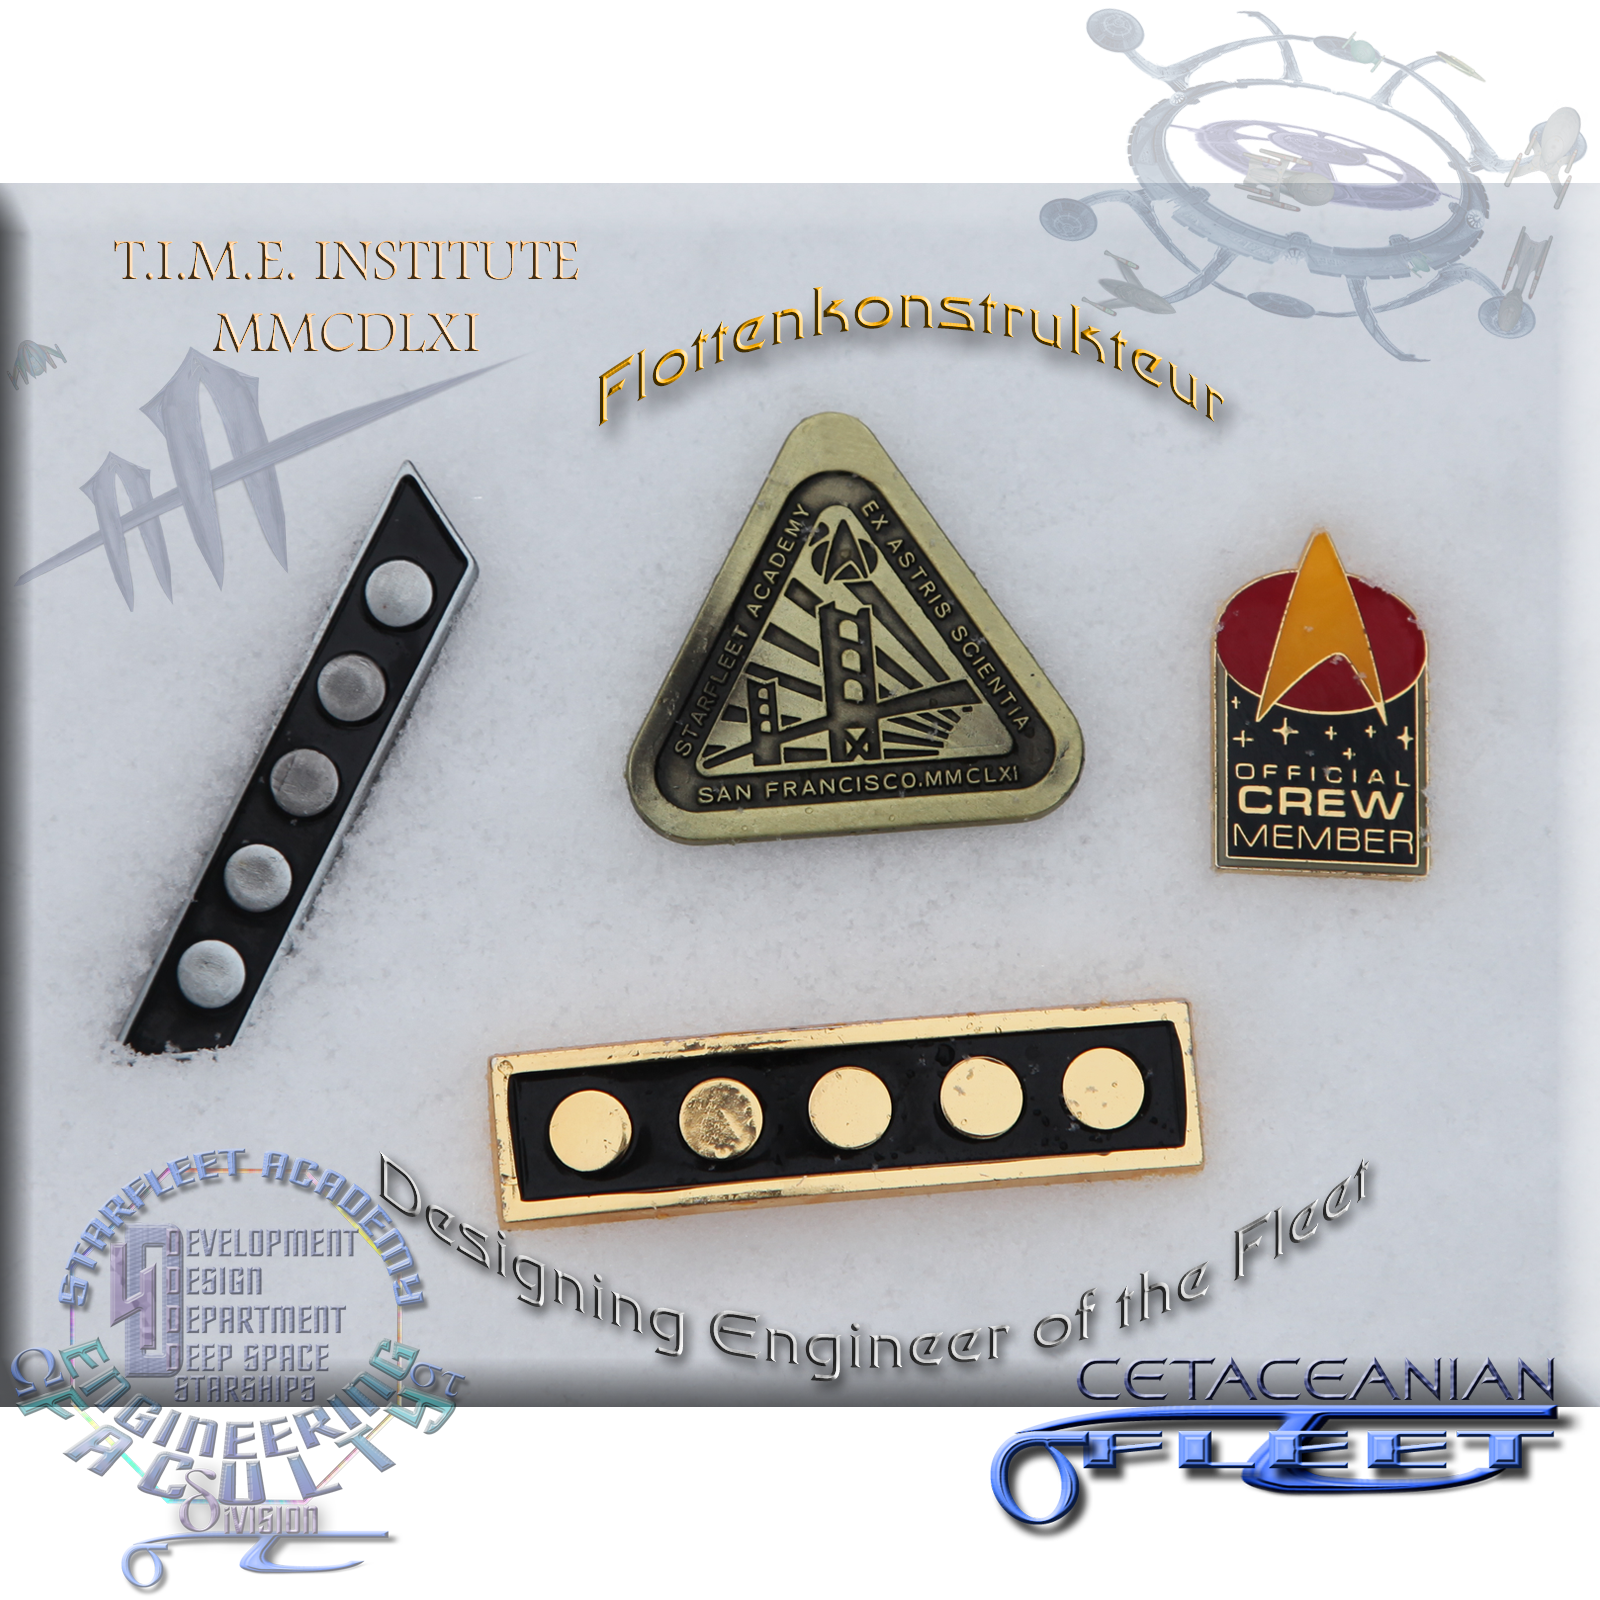 T.I.M.E. Academy insignia Designing Engineer of the Fleet - Admiral of the Fleet